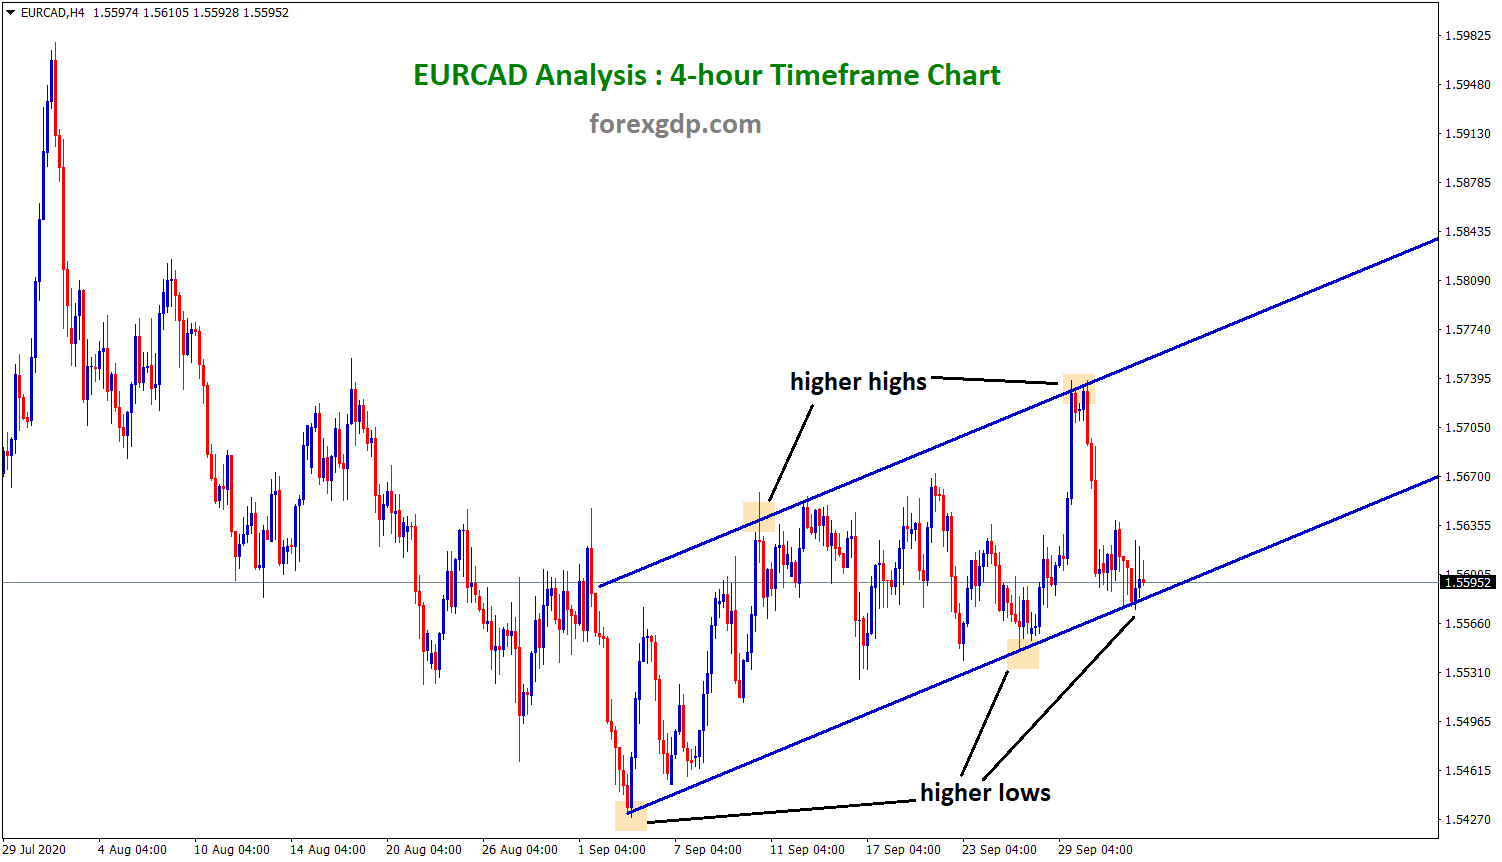 eurcad bouncing back from higher lows in 4h